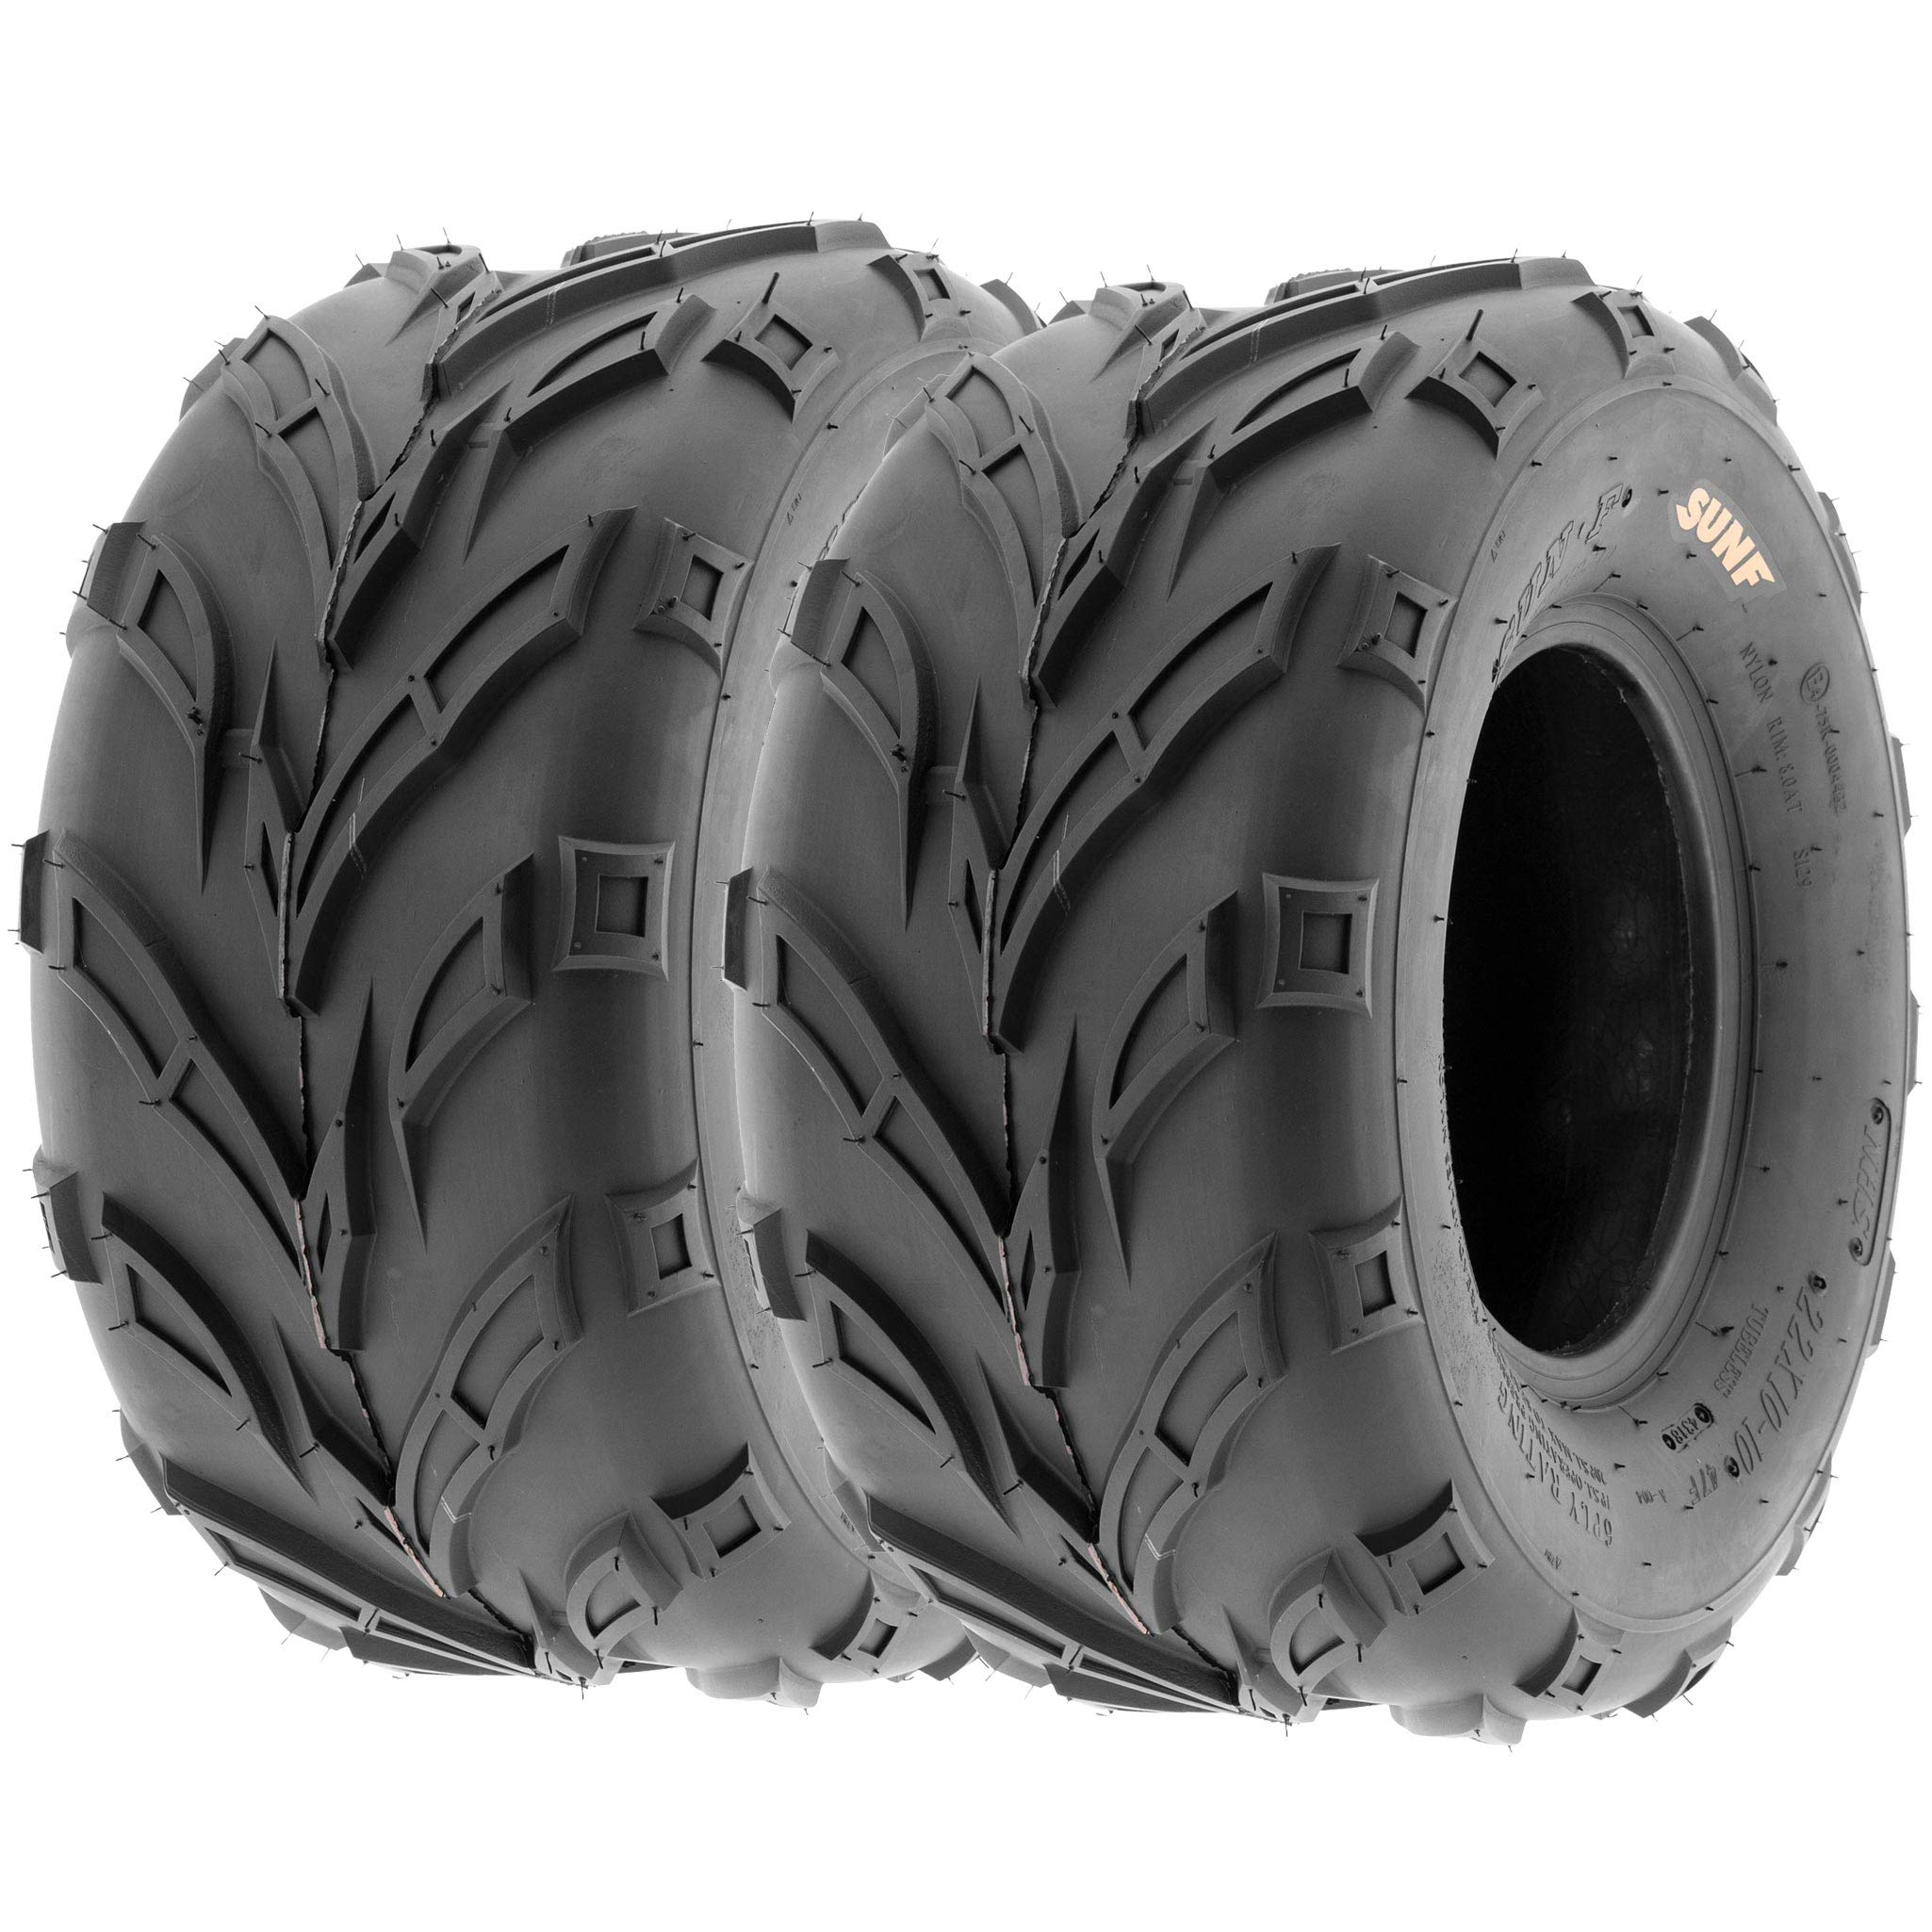 Pair of 2 SunF A004 ATV UTV 20x10-10 AT off-road Tires, Trail & Track, 6 PR, Tubeless by SUNF